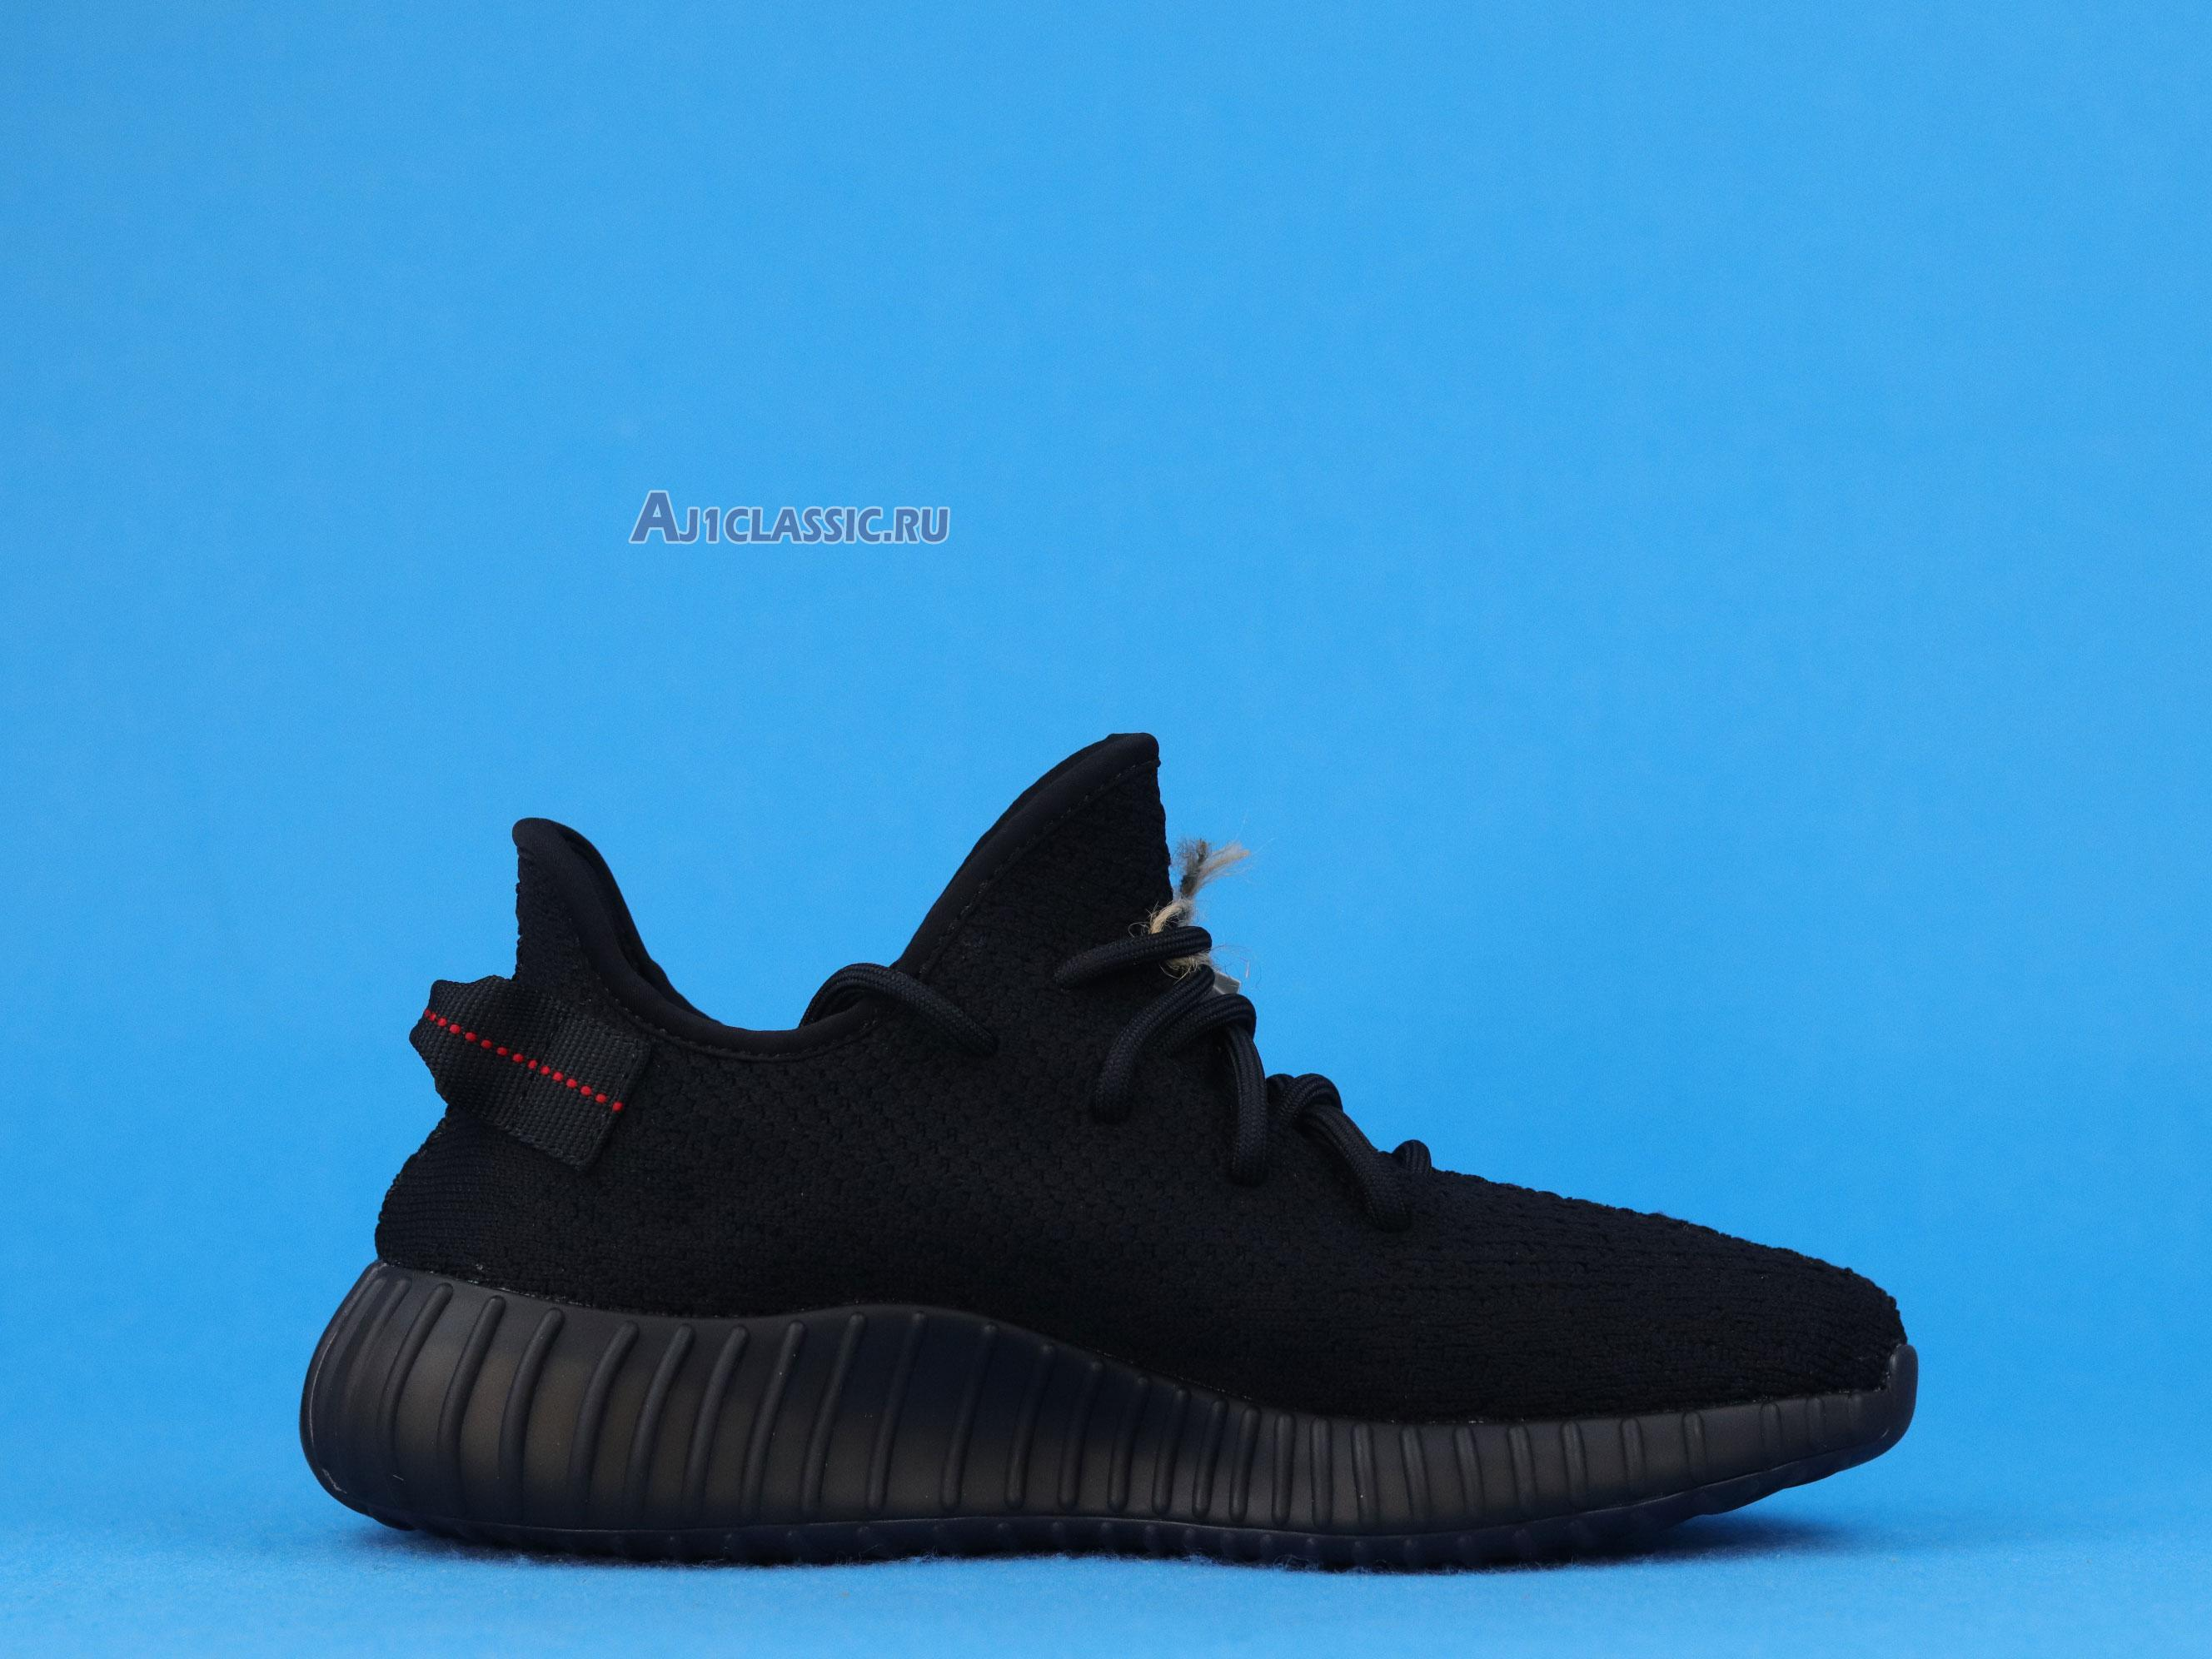 """Adidas Yeezy Boost 350 V2 """"Bred"""" CP9652"""